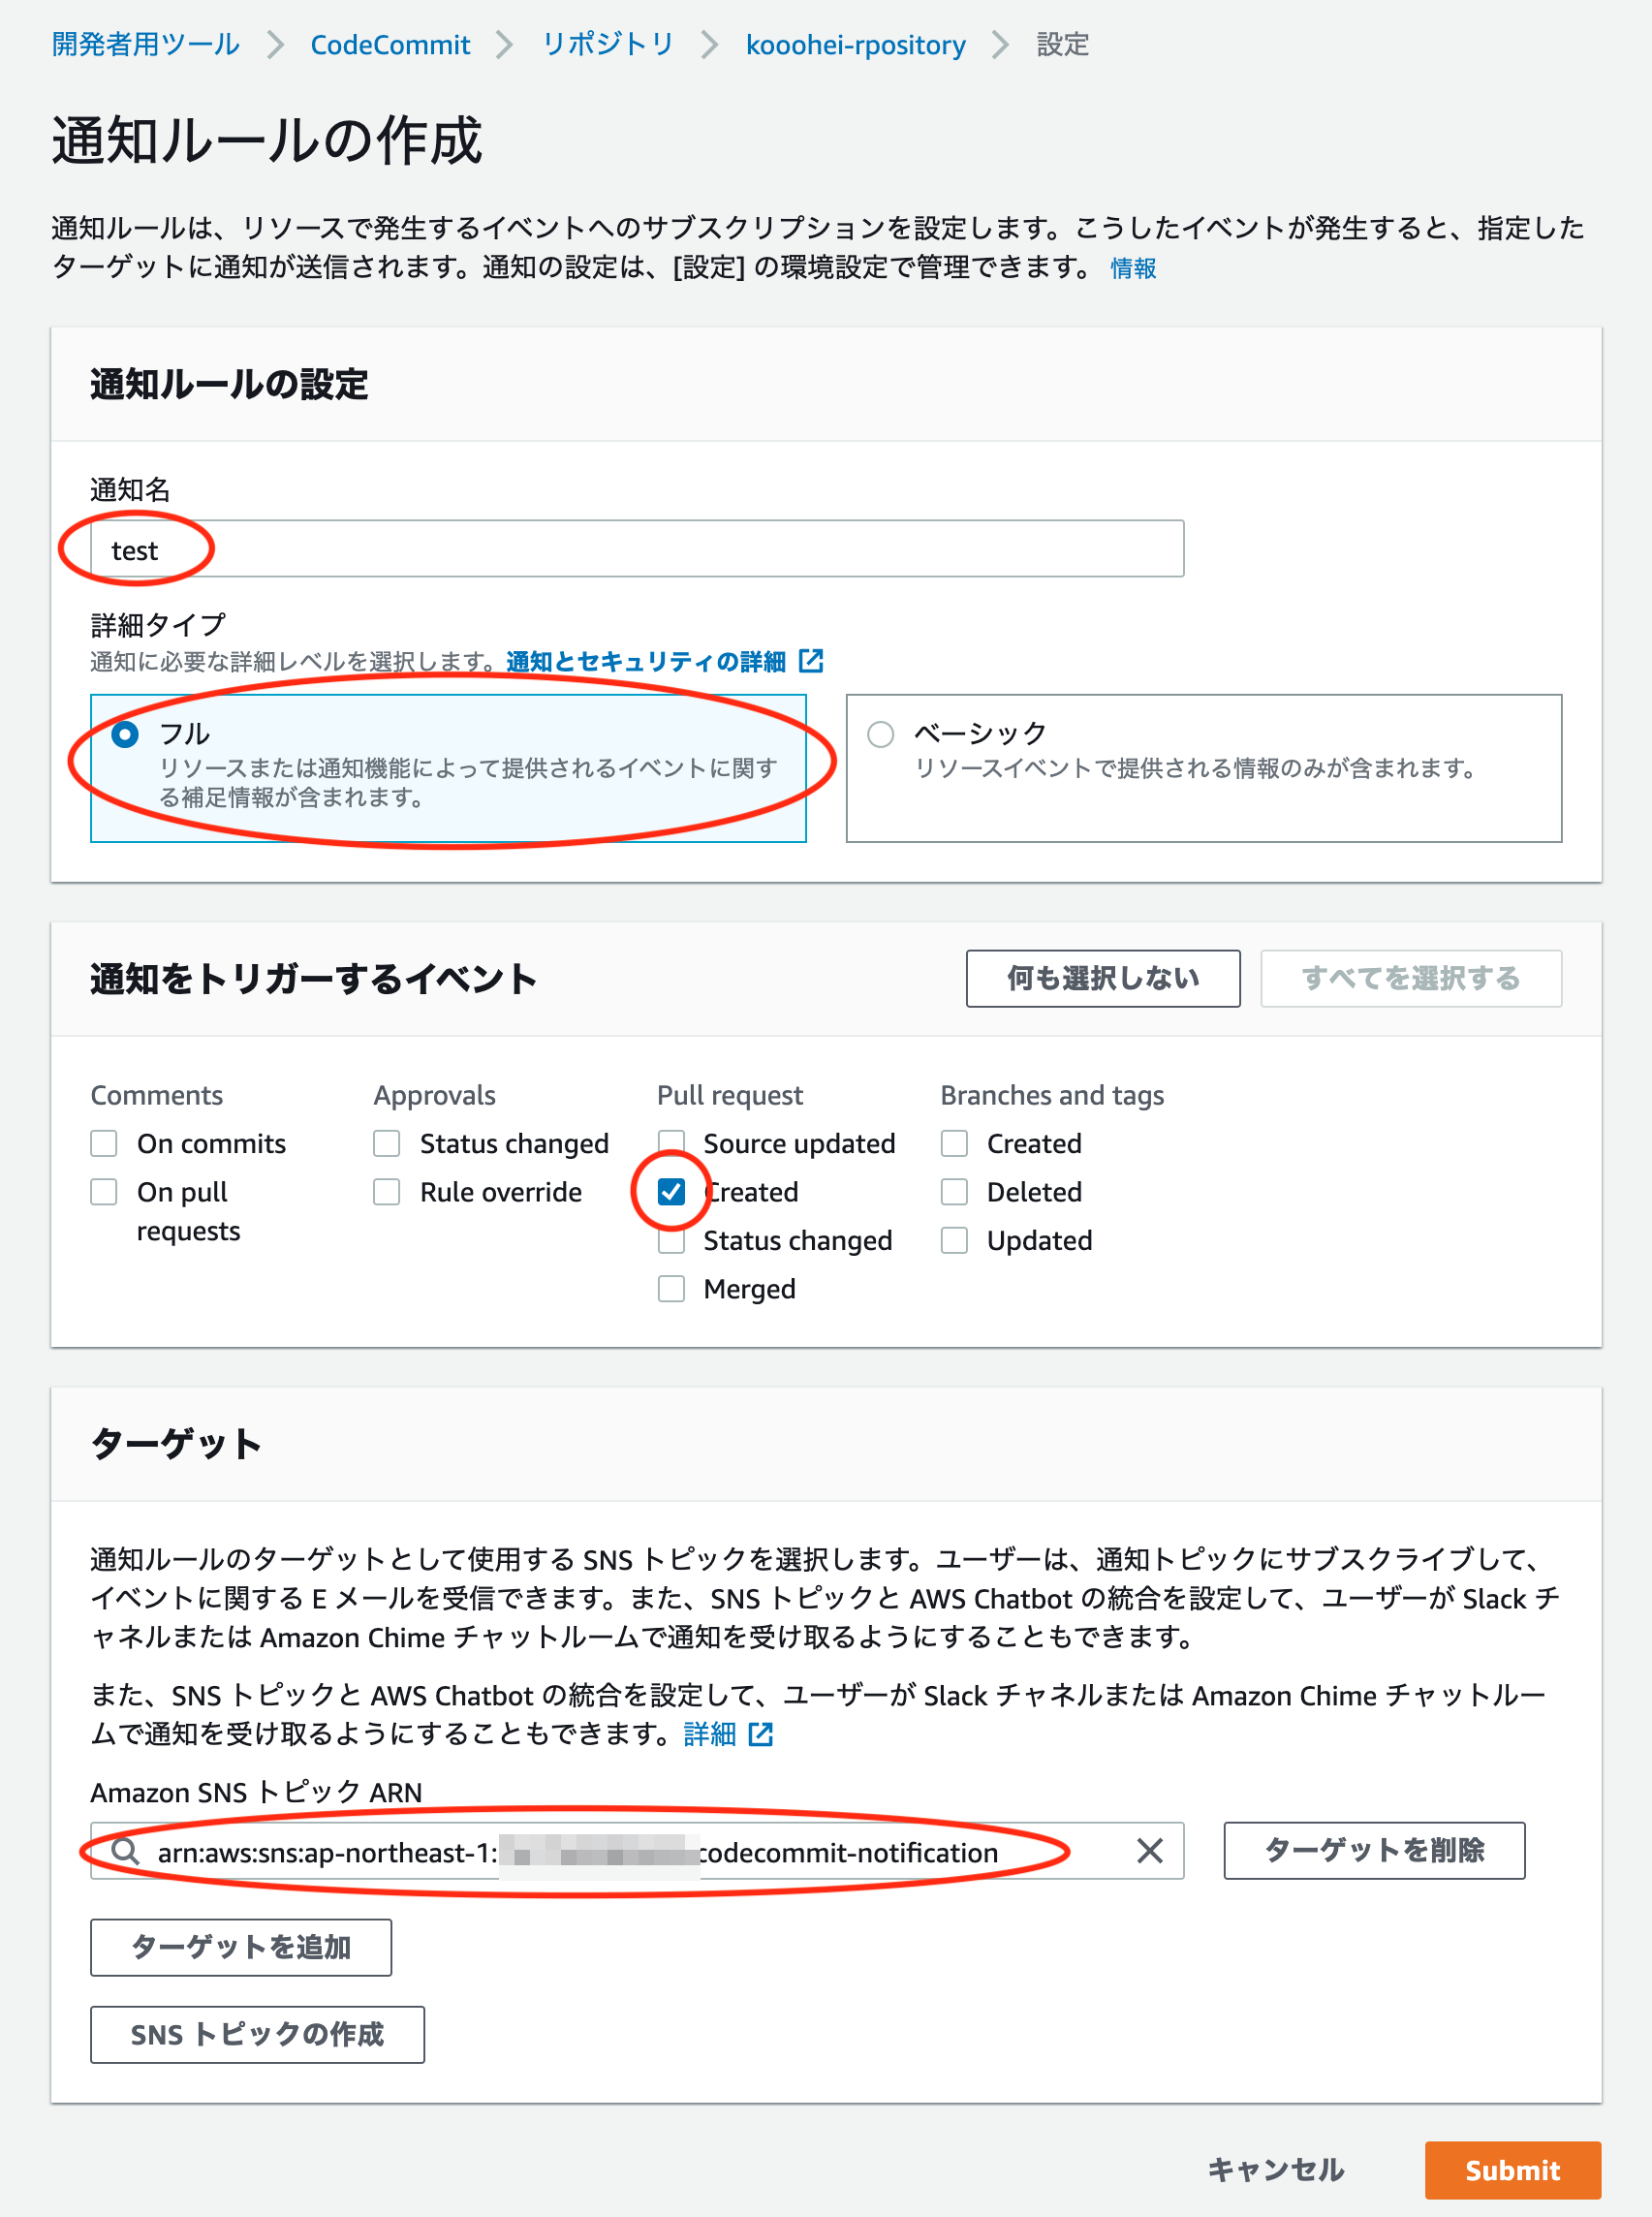 screencapture-ap-northeast-1-console-aws-amazon-codesuite-codecommit-repository-kooohei-rpository-notifications-create-2020-02-28-14_07_36.png